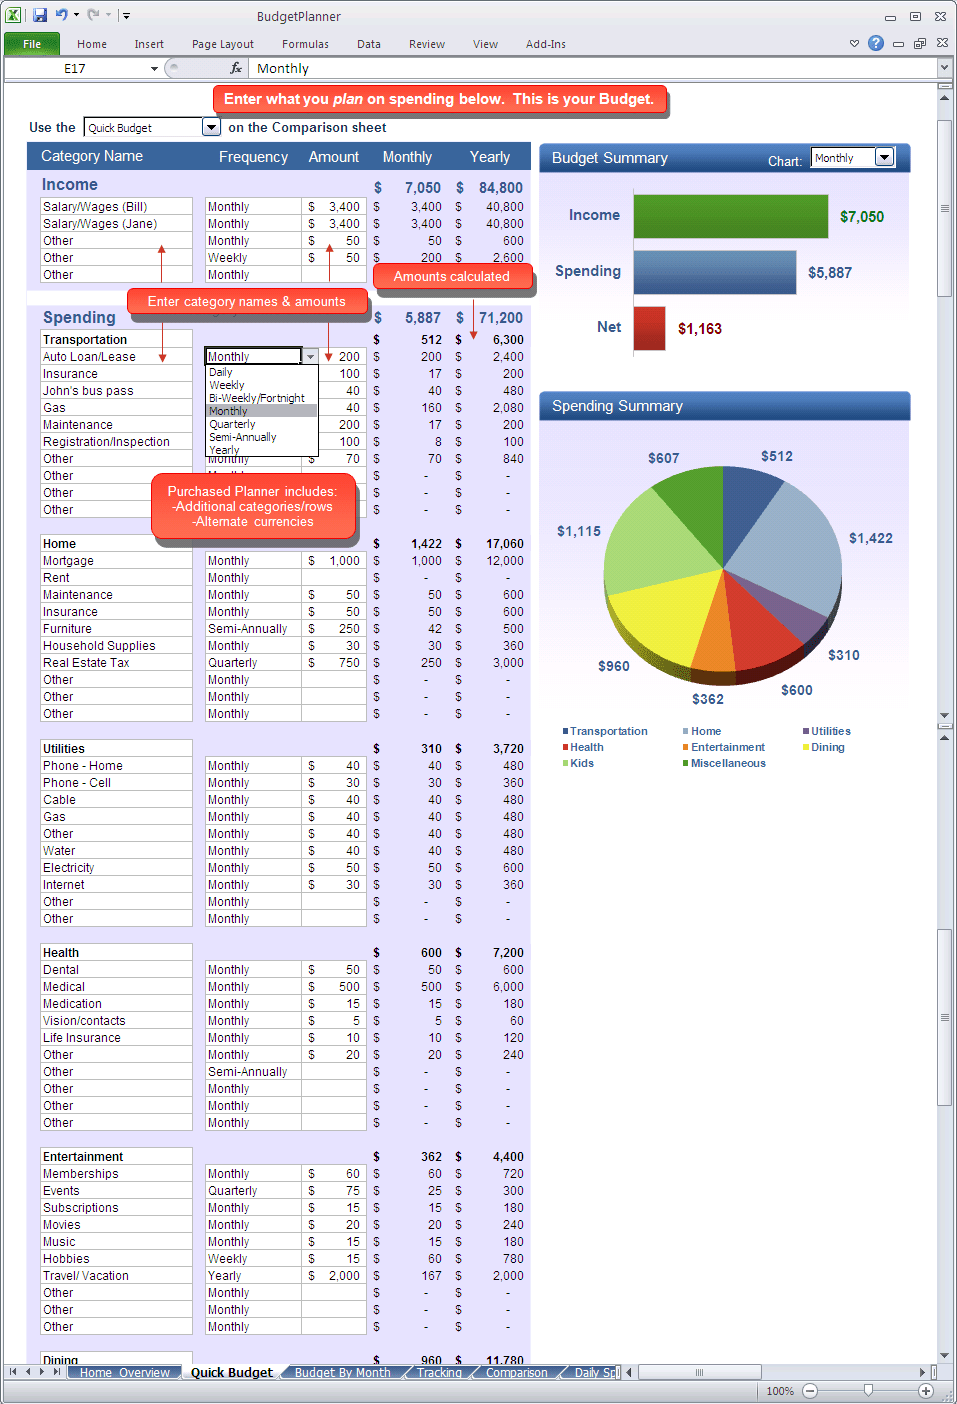 Budget Planner - Quick Budget Excel spreadsheet